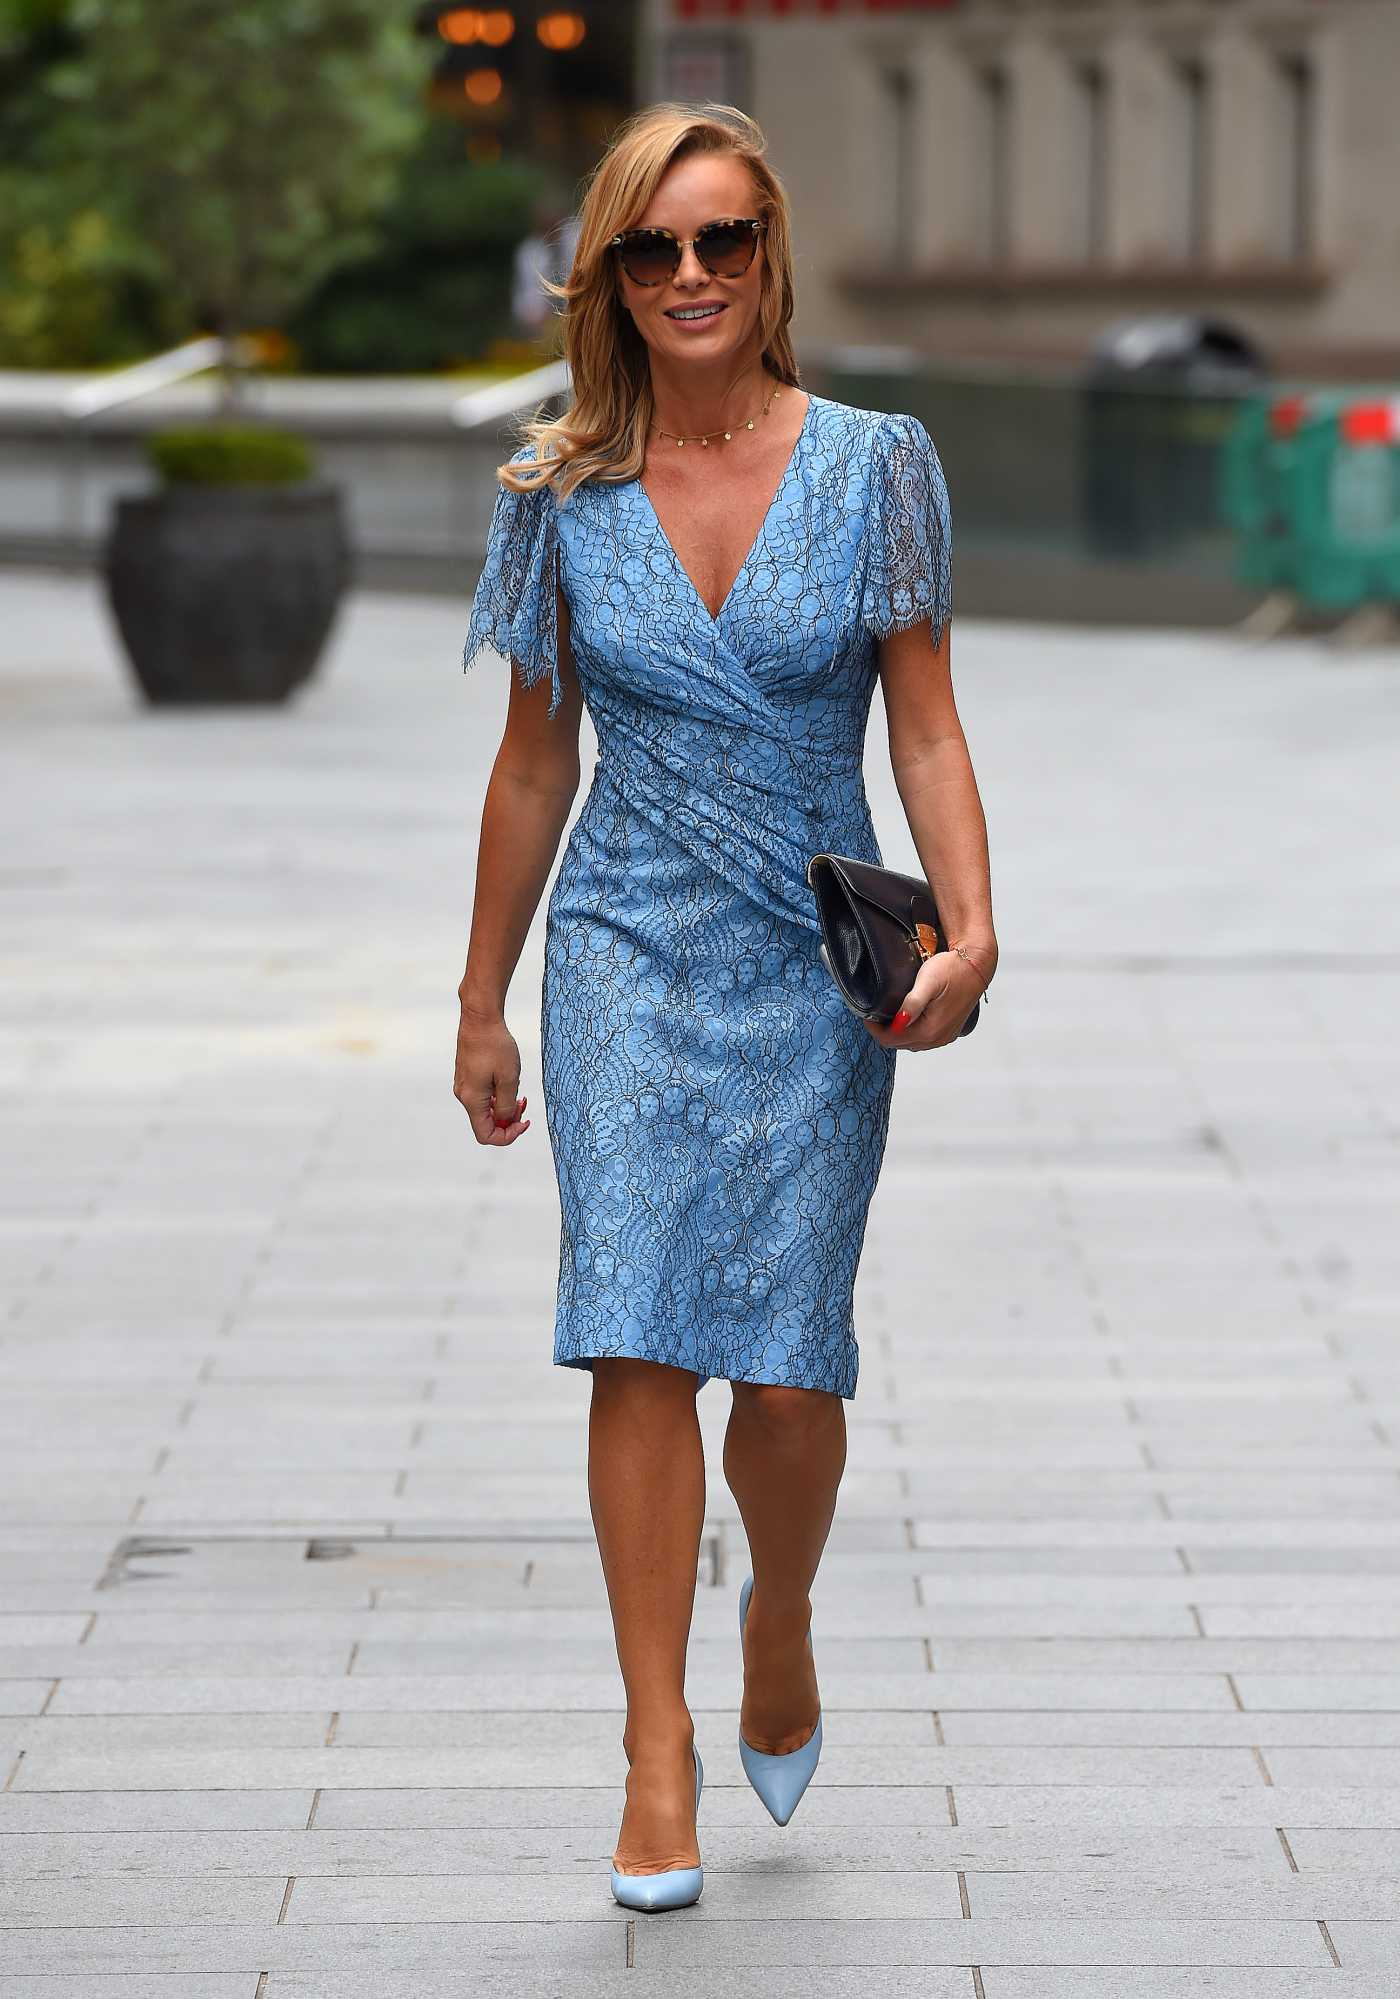 Amanda Holden in a Blue Dress Leaves the Heart Radio Studios in London 06/29/2020